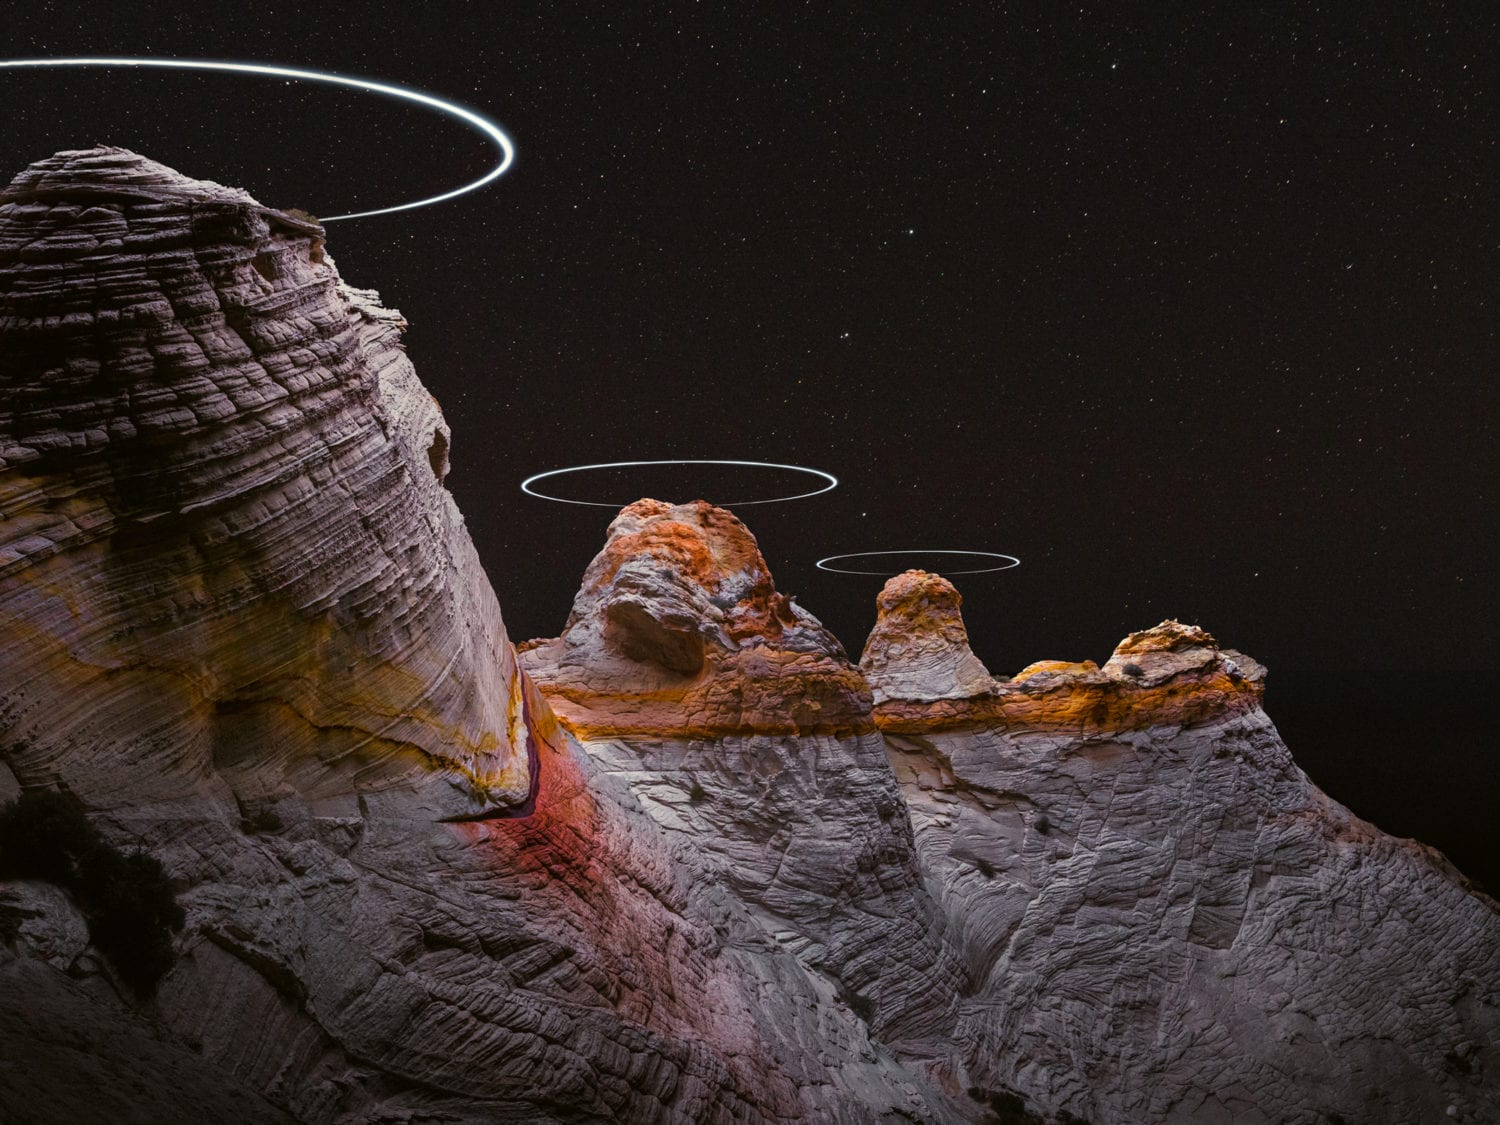 Reuben Wu Captures Light Paths With Drones Above Natural Landscapes | Yellowtrace